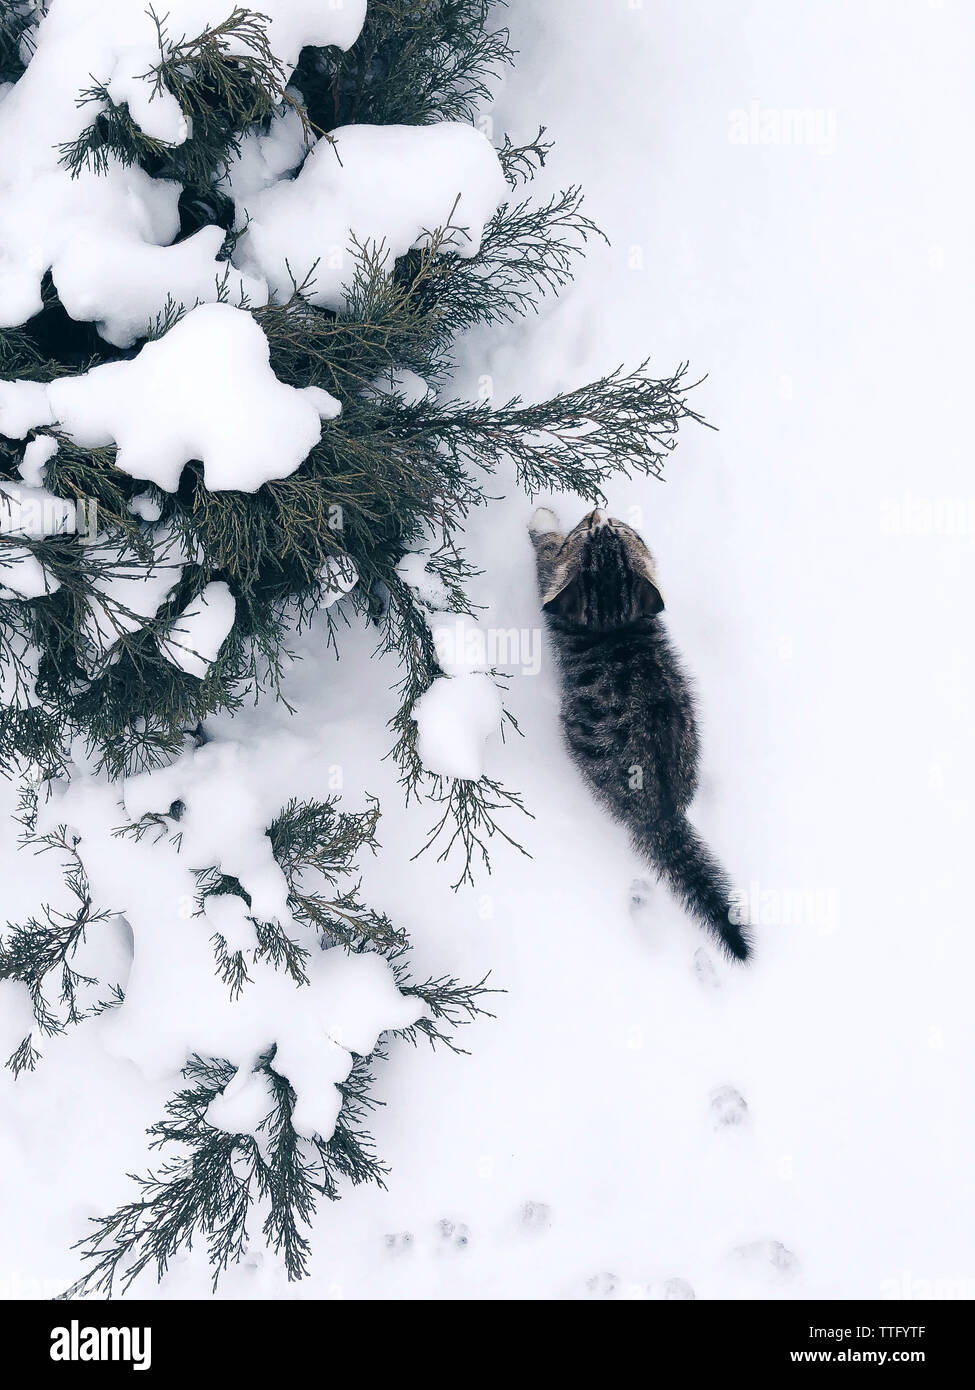 Small Cat kitten outside in snow by evergreen bush - Stock Image